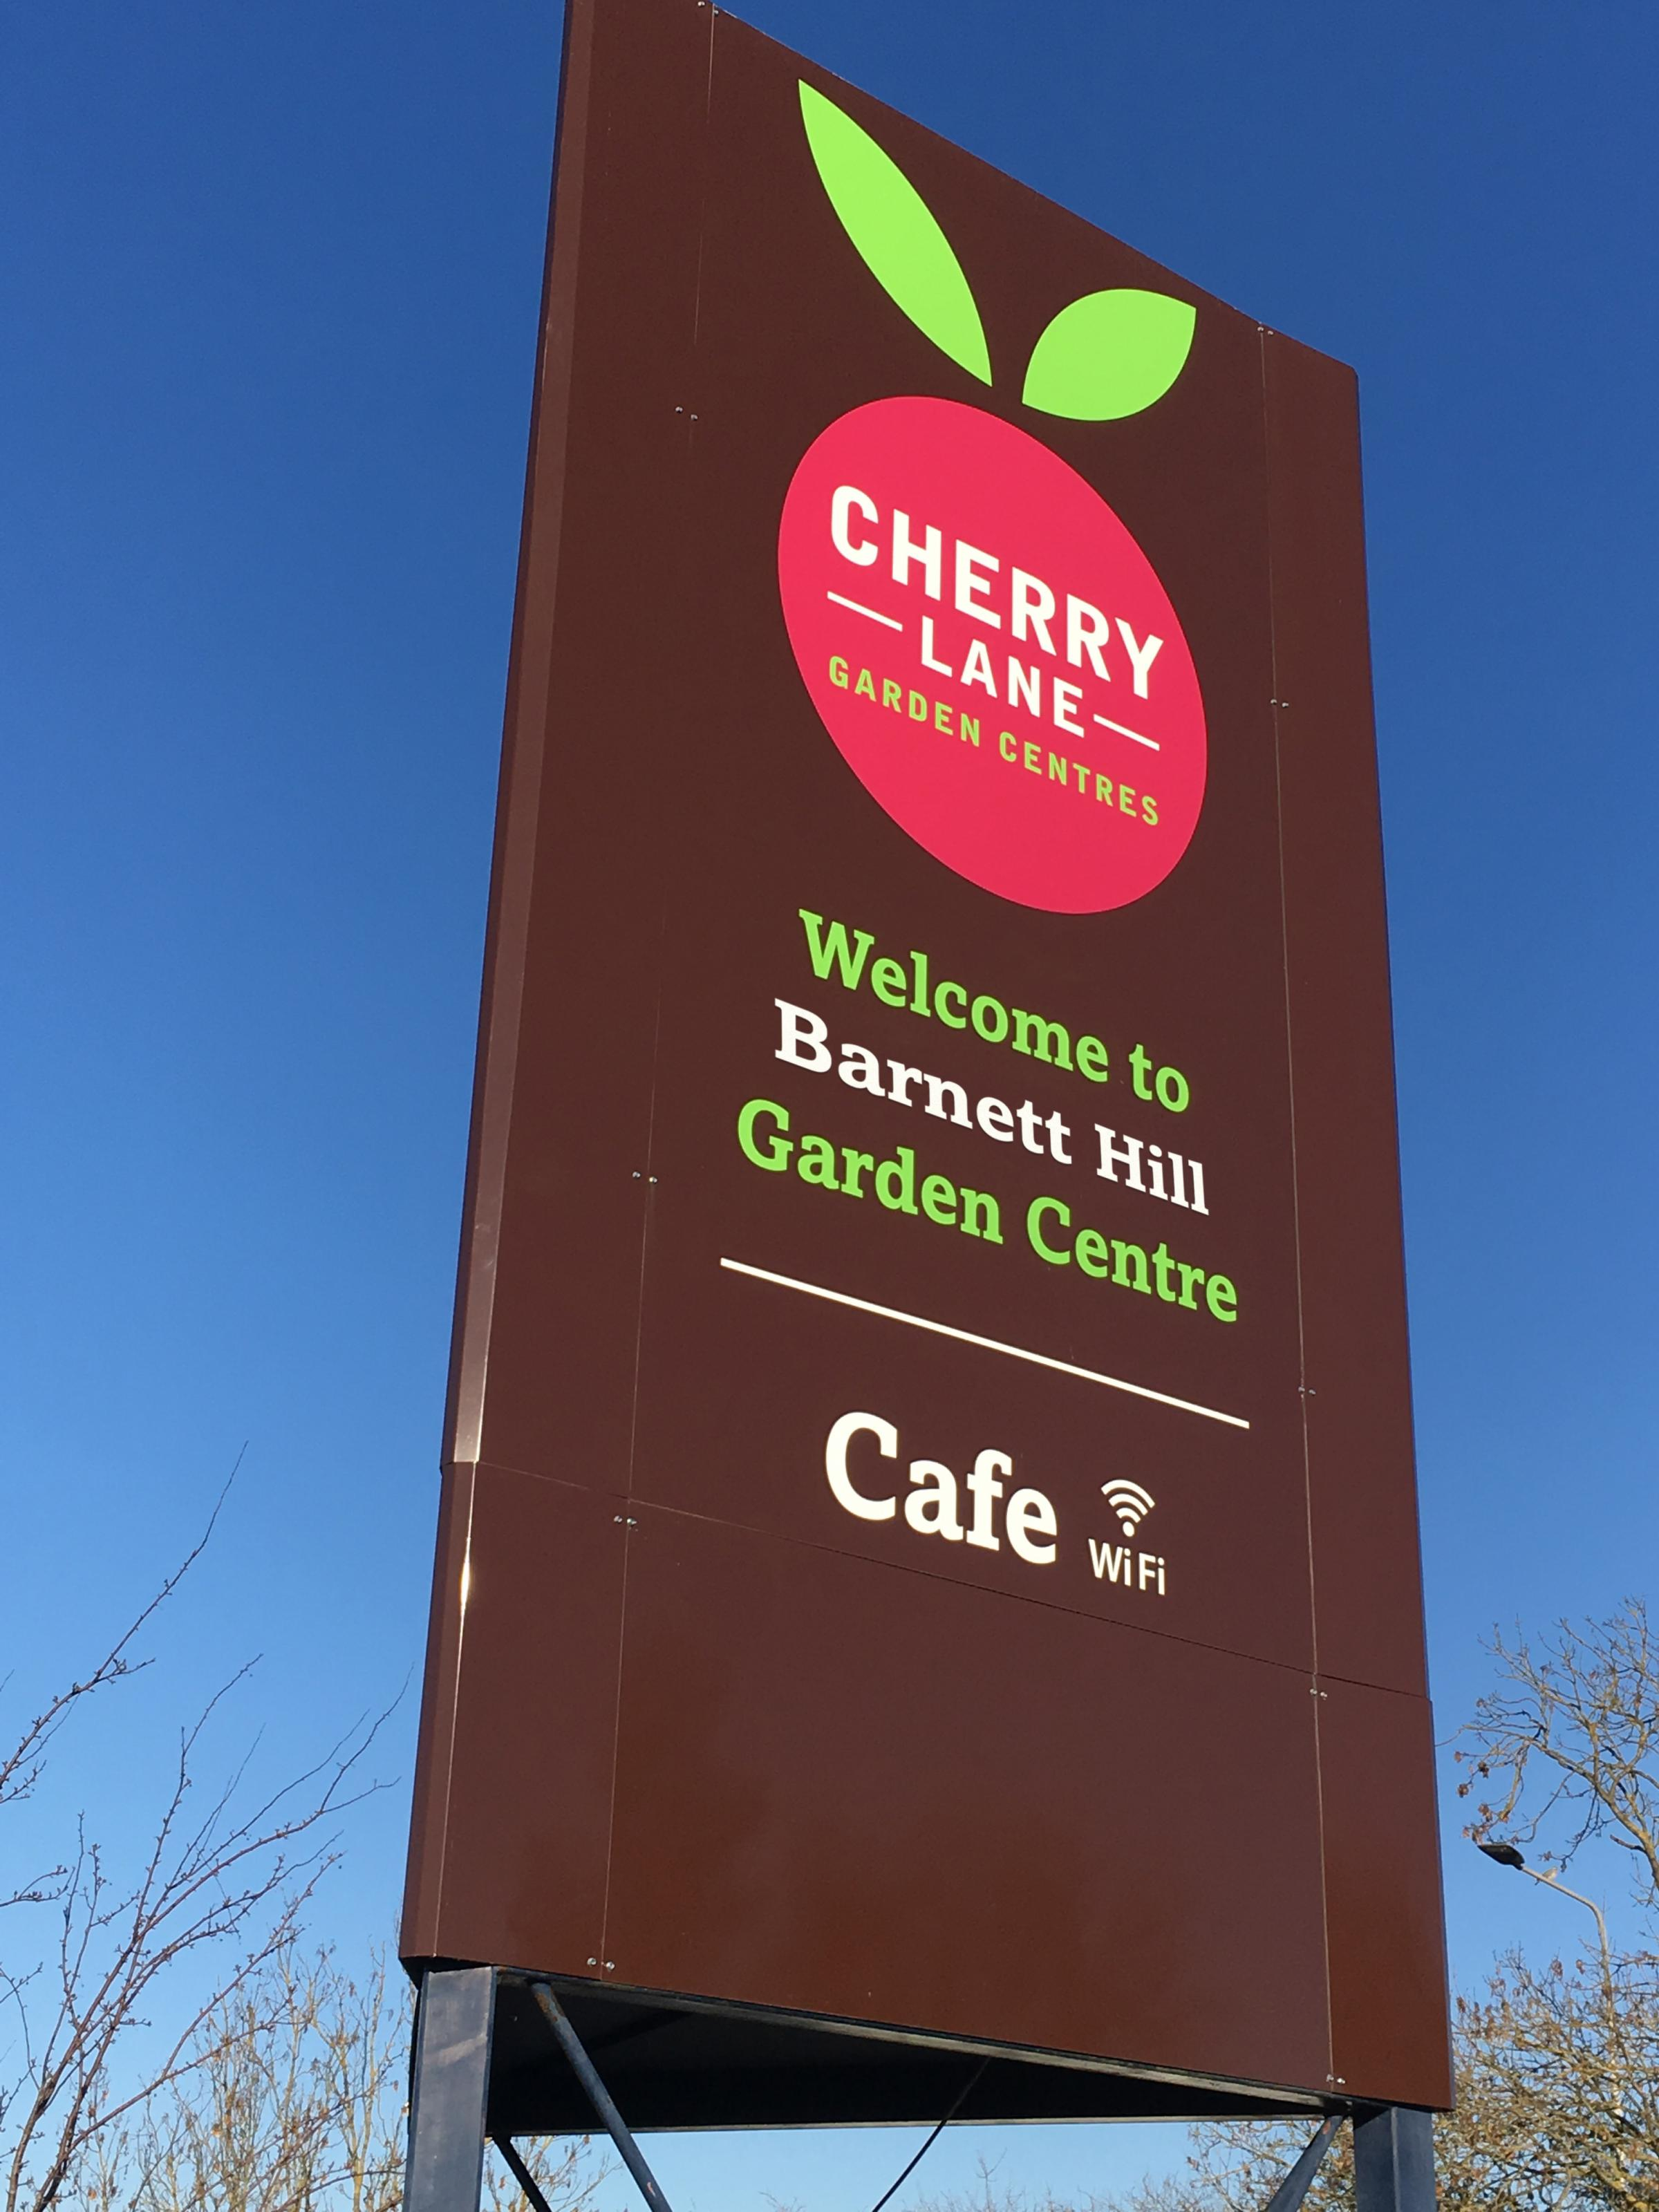 Cherry Lane has taken over Barnett Hill garden centre near Clent